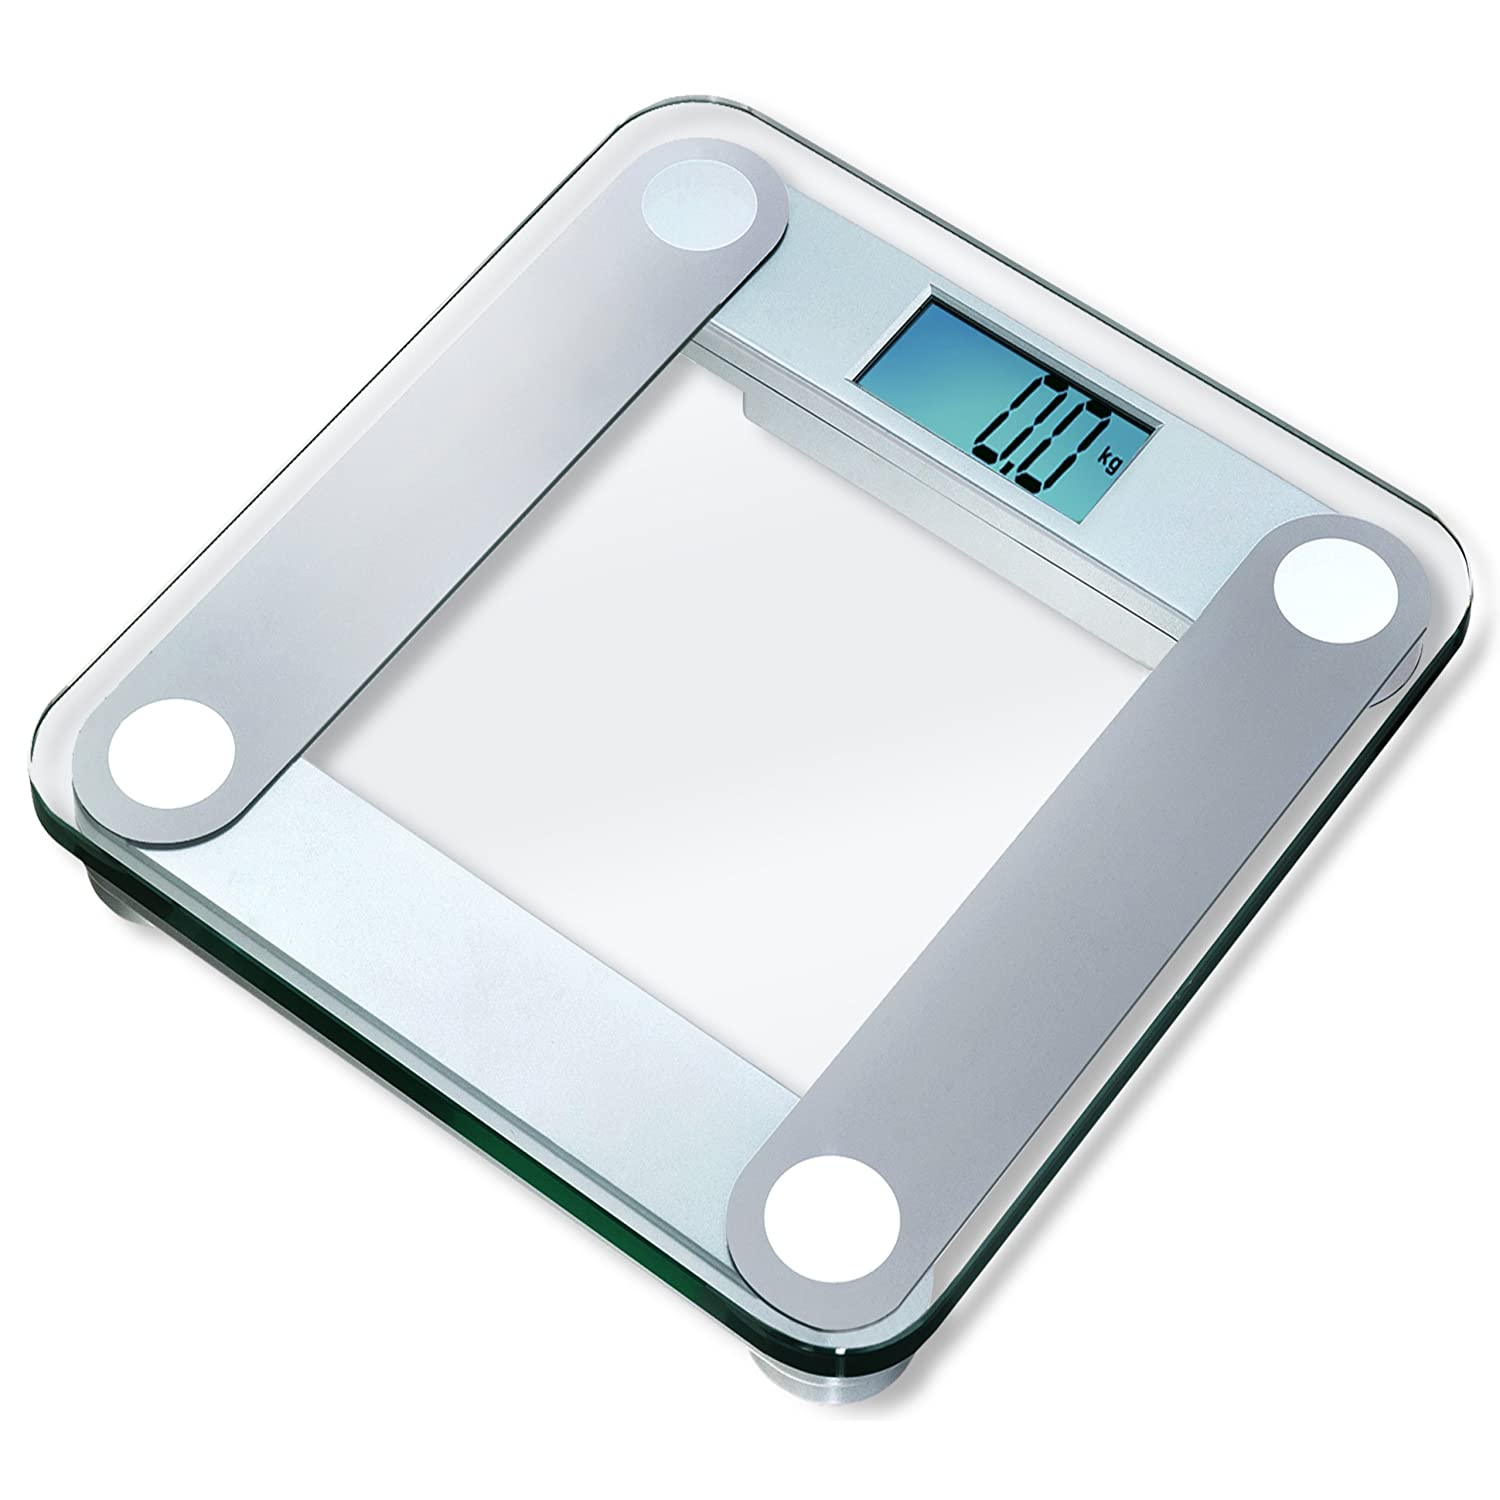 bathrooms scale, EatSmart products, weight management